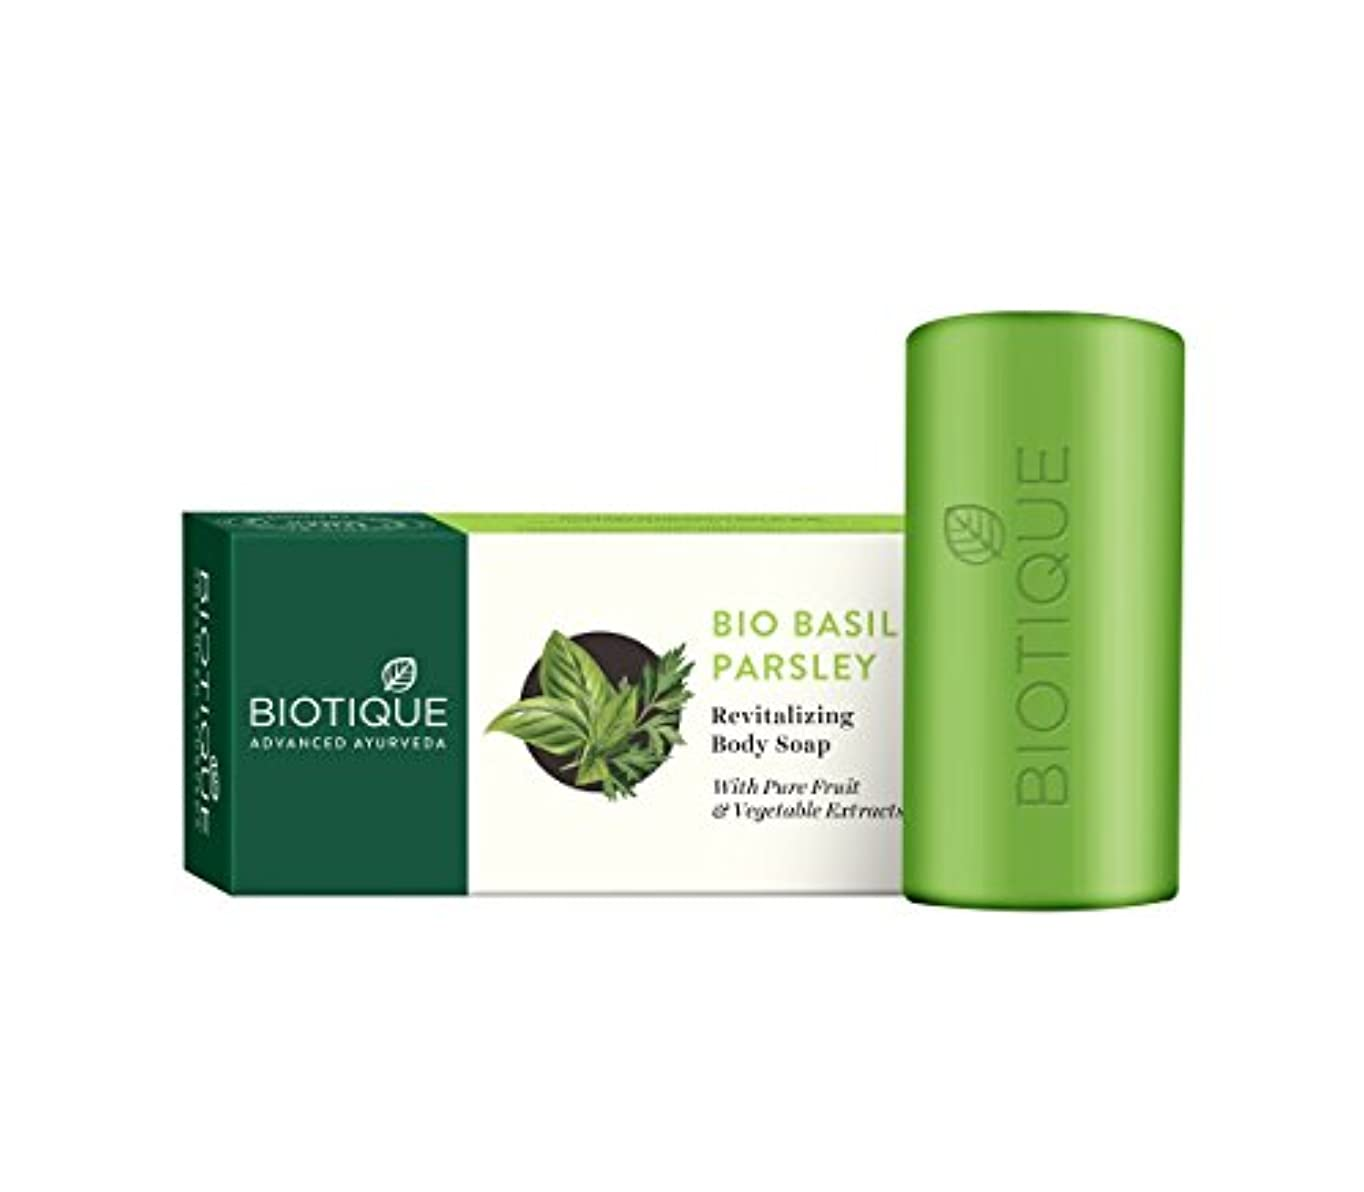 差保育園めまいBiotique Soap Basil & Parsley 150g